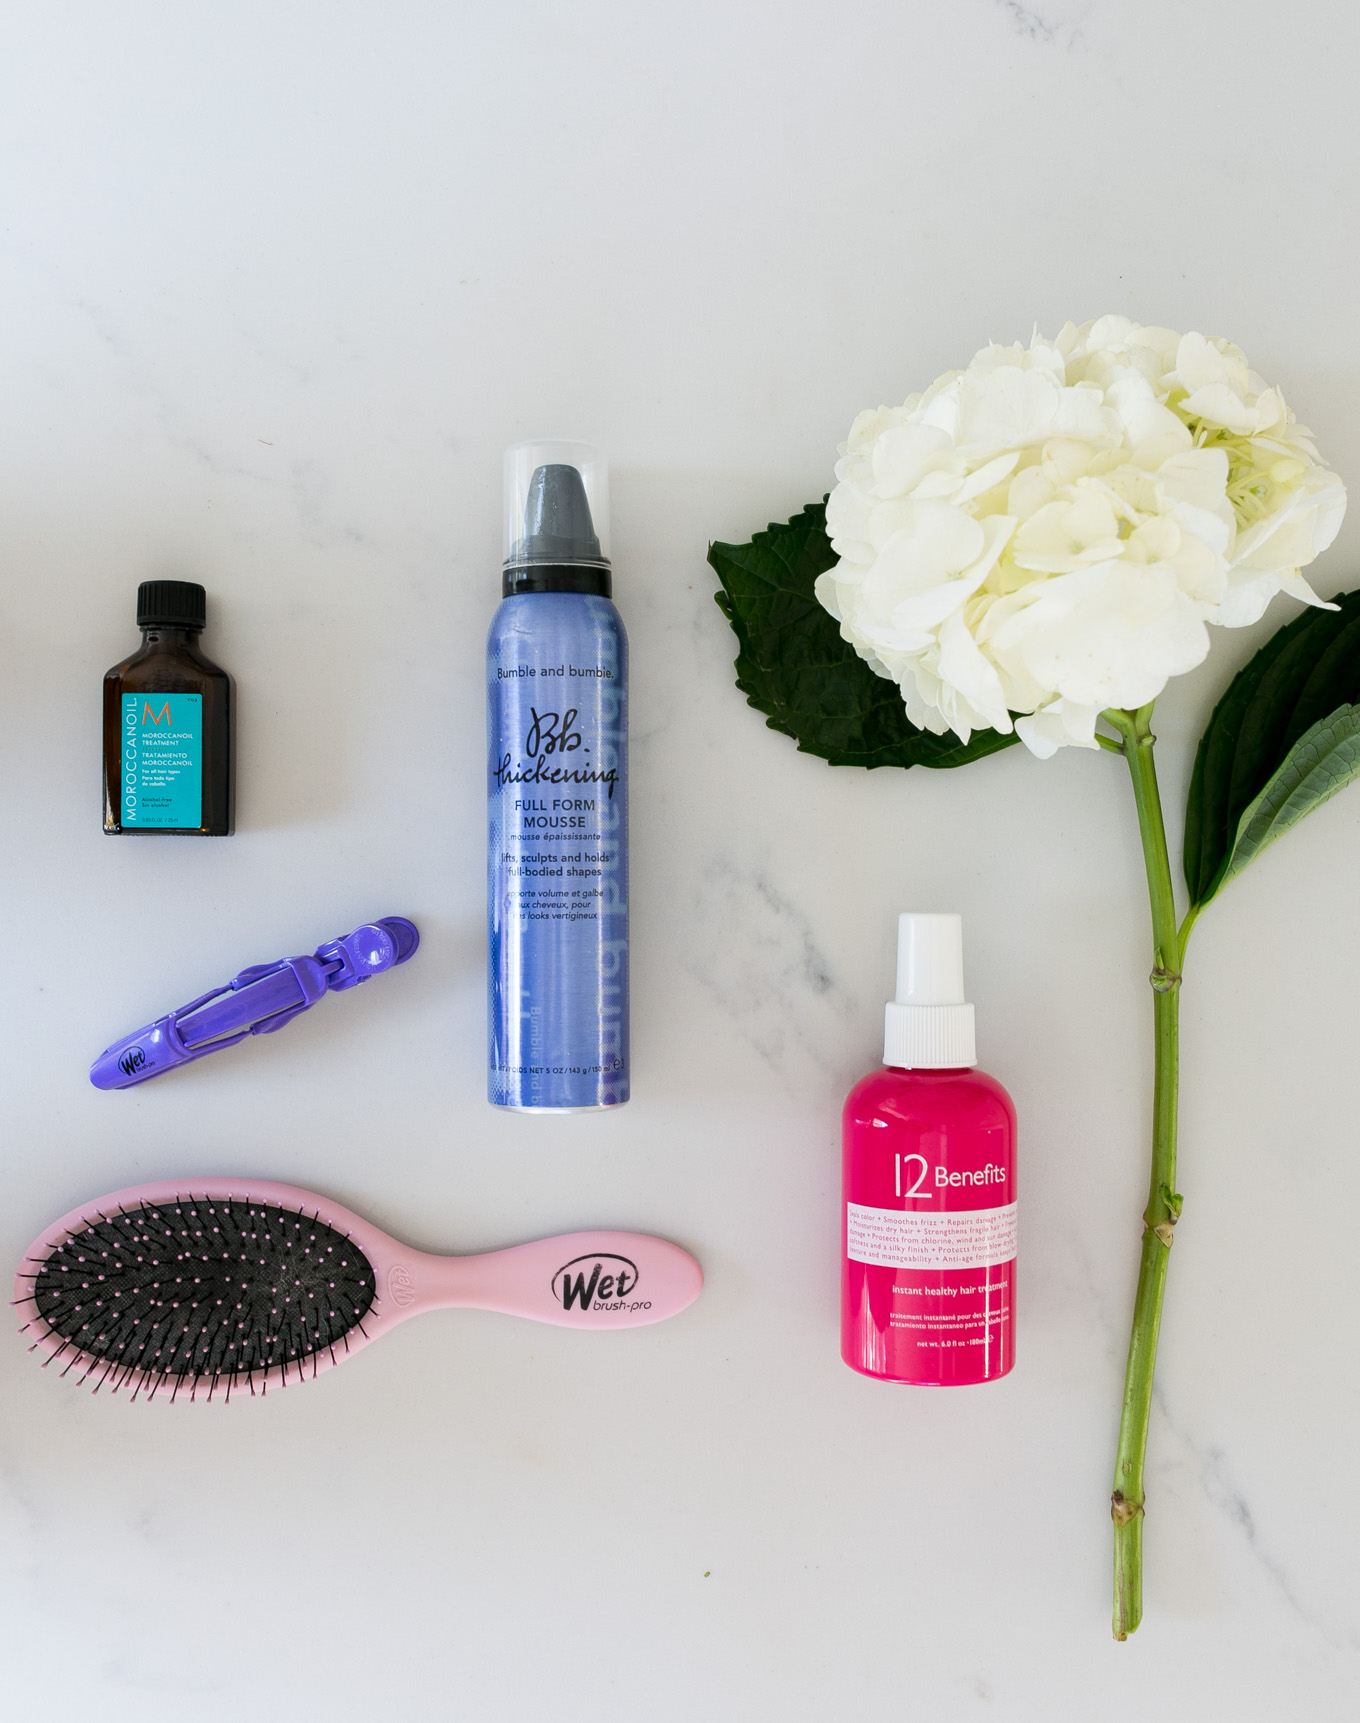 Blogger Daryl-Ann Denner of Something Beautiful share her favorite hair care products to use on wet hair including Moroccan Oil Treatment and Bumble and Bumble Thickening Full Form Mousse